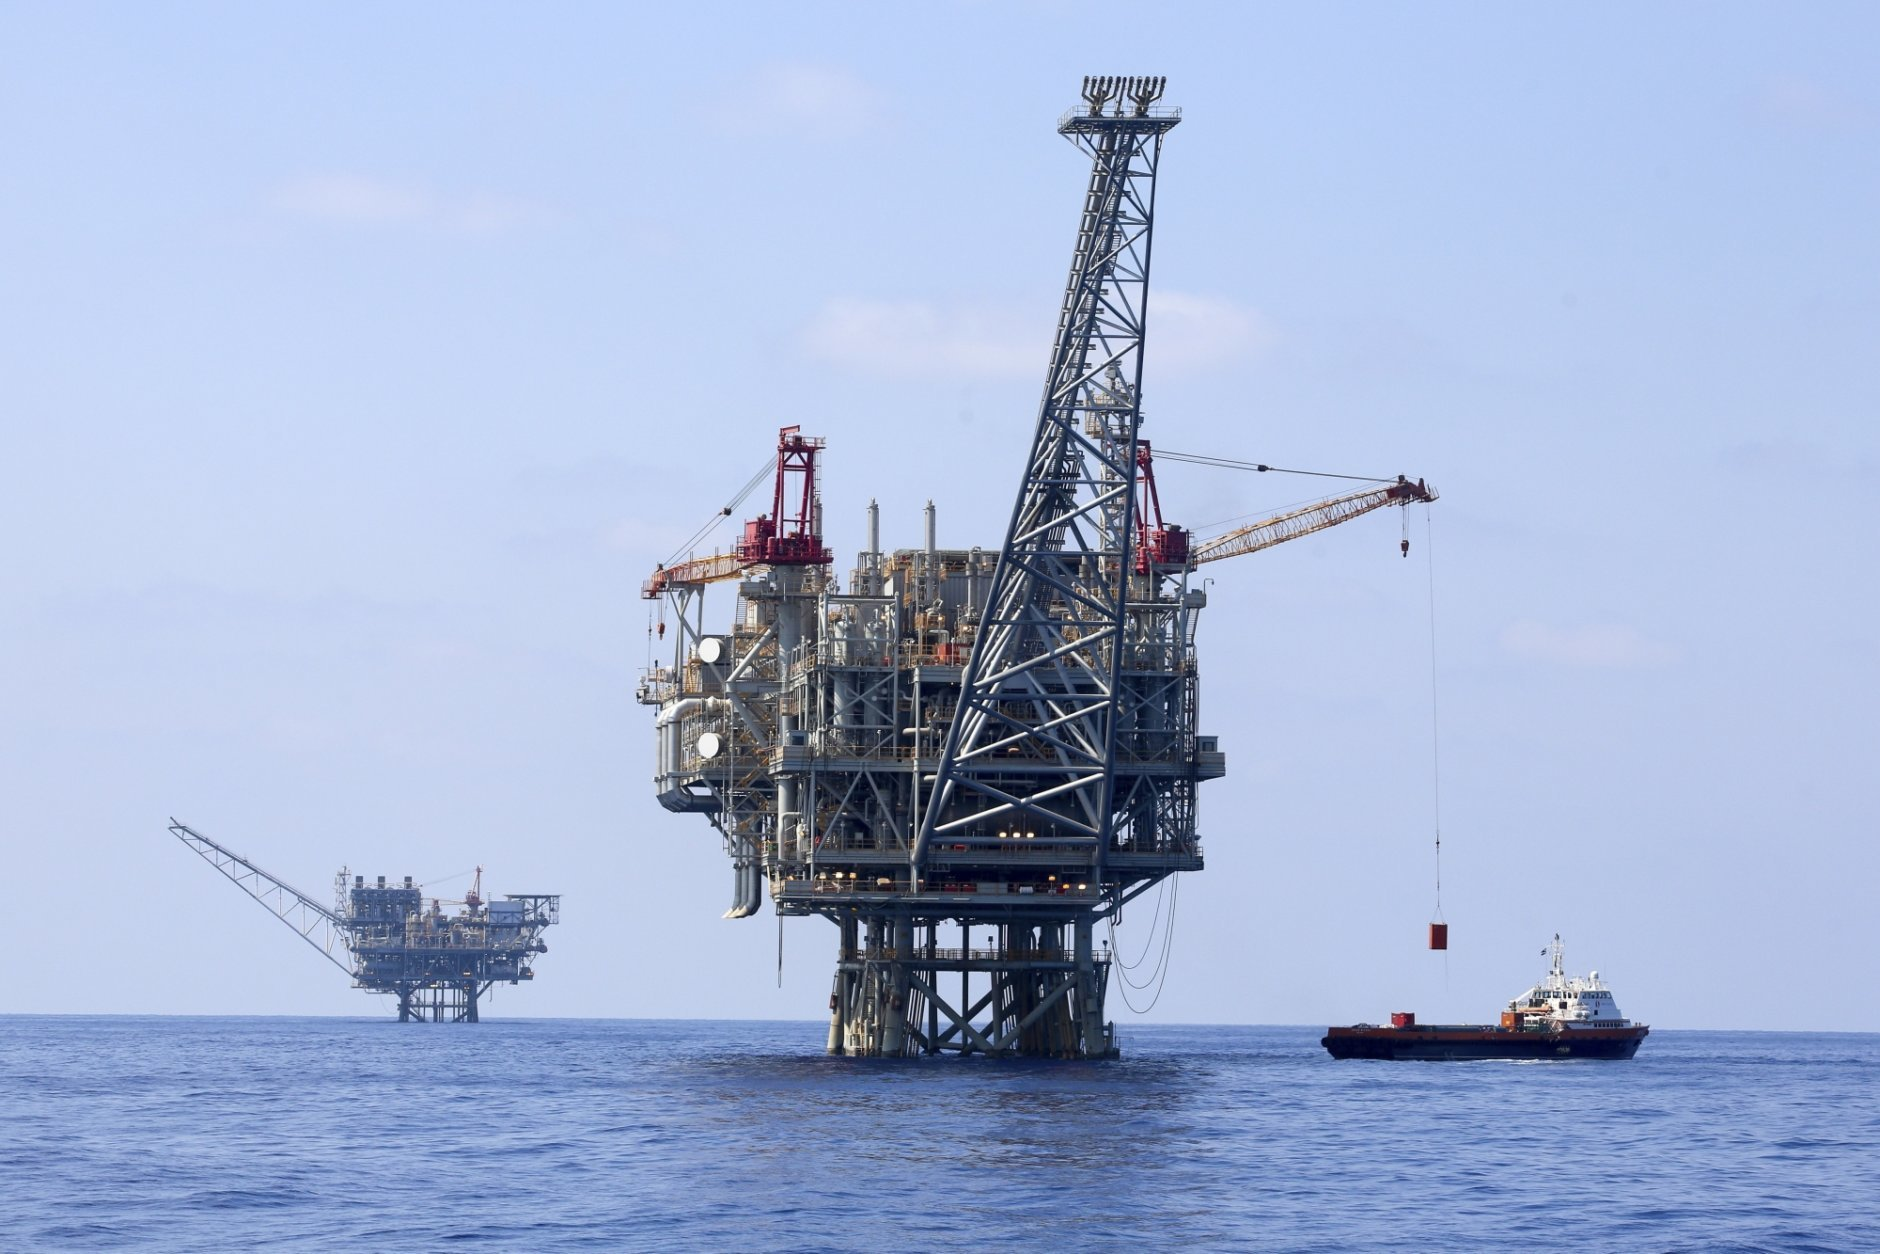 File - In this Sept. 2, 2015 file photo rigs are seen in Tamar natural gas field in the Mediterranean Sea off the coast of Israel. Israel's Delek Drilling and its U.S. partner, Noble Energy, said Sunday the foundation of their rig for the Leviathan gas field has arrived, in the first stage of an ambitious project they say will wean Israel off coal and revolutionize its economy by turning it into an energy exporter. (AP Photo/Marc Israel Sellem, File)